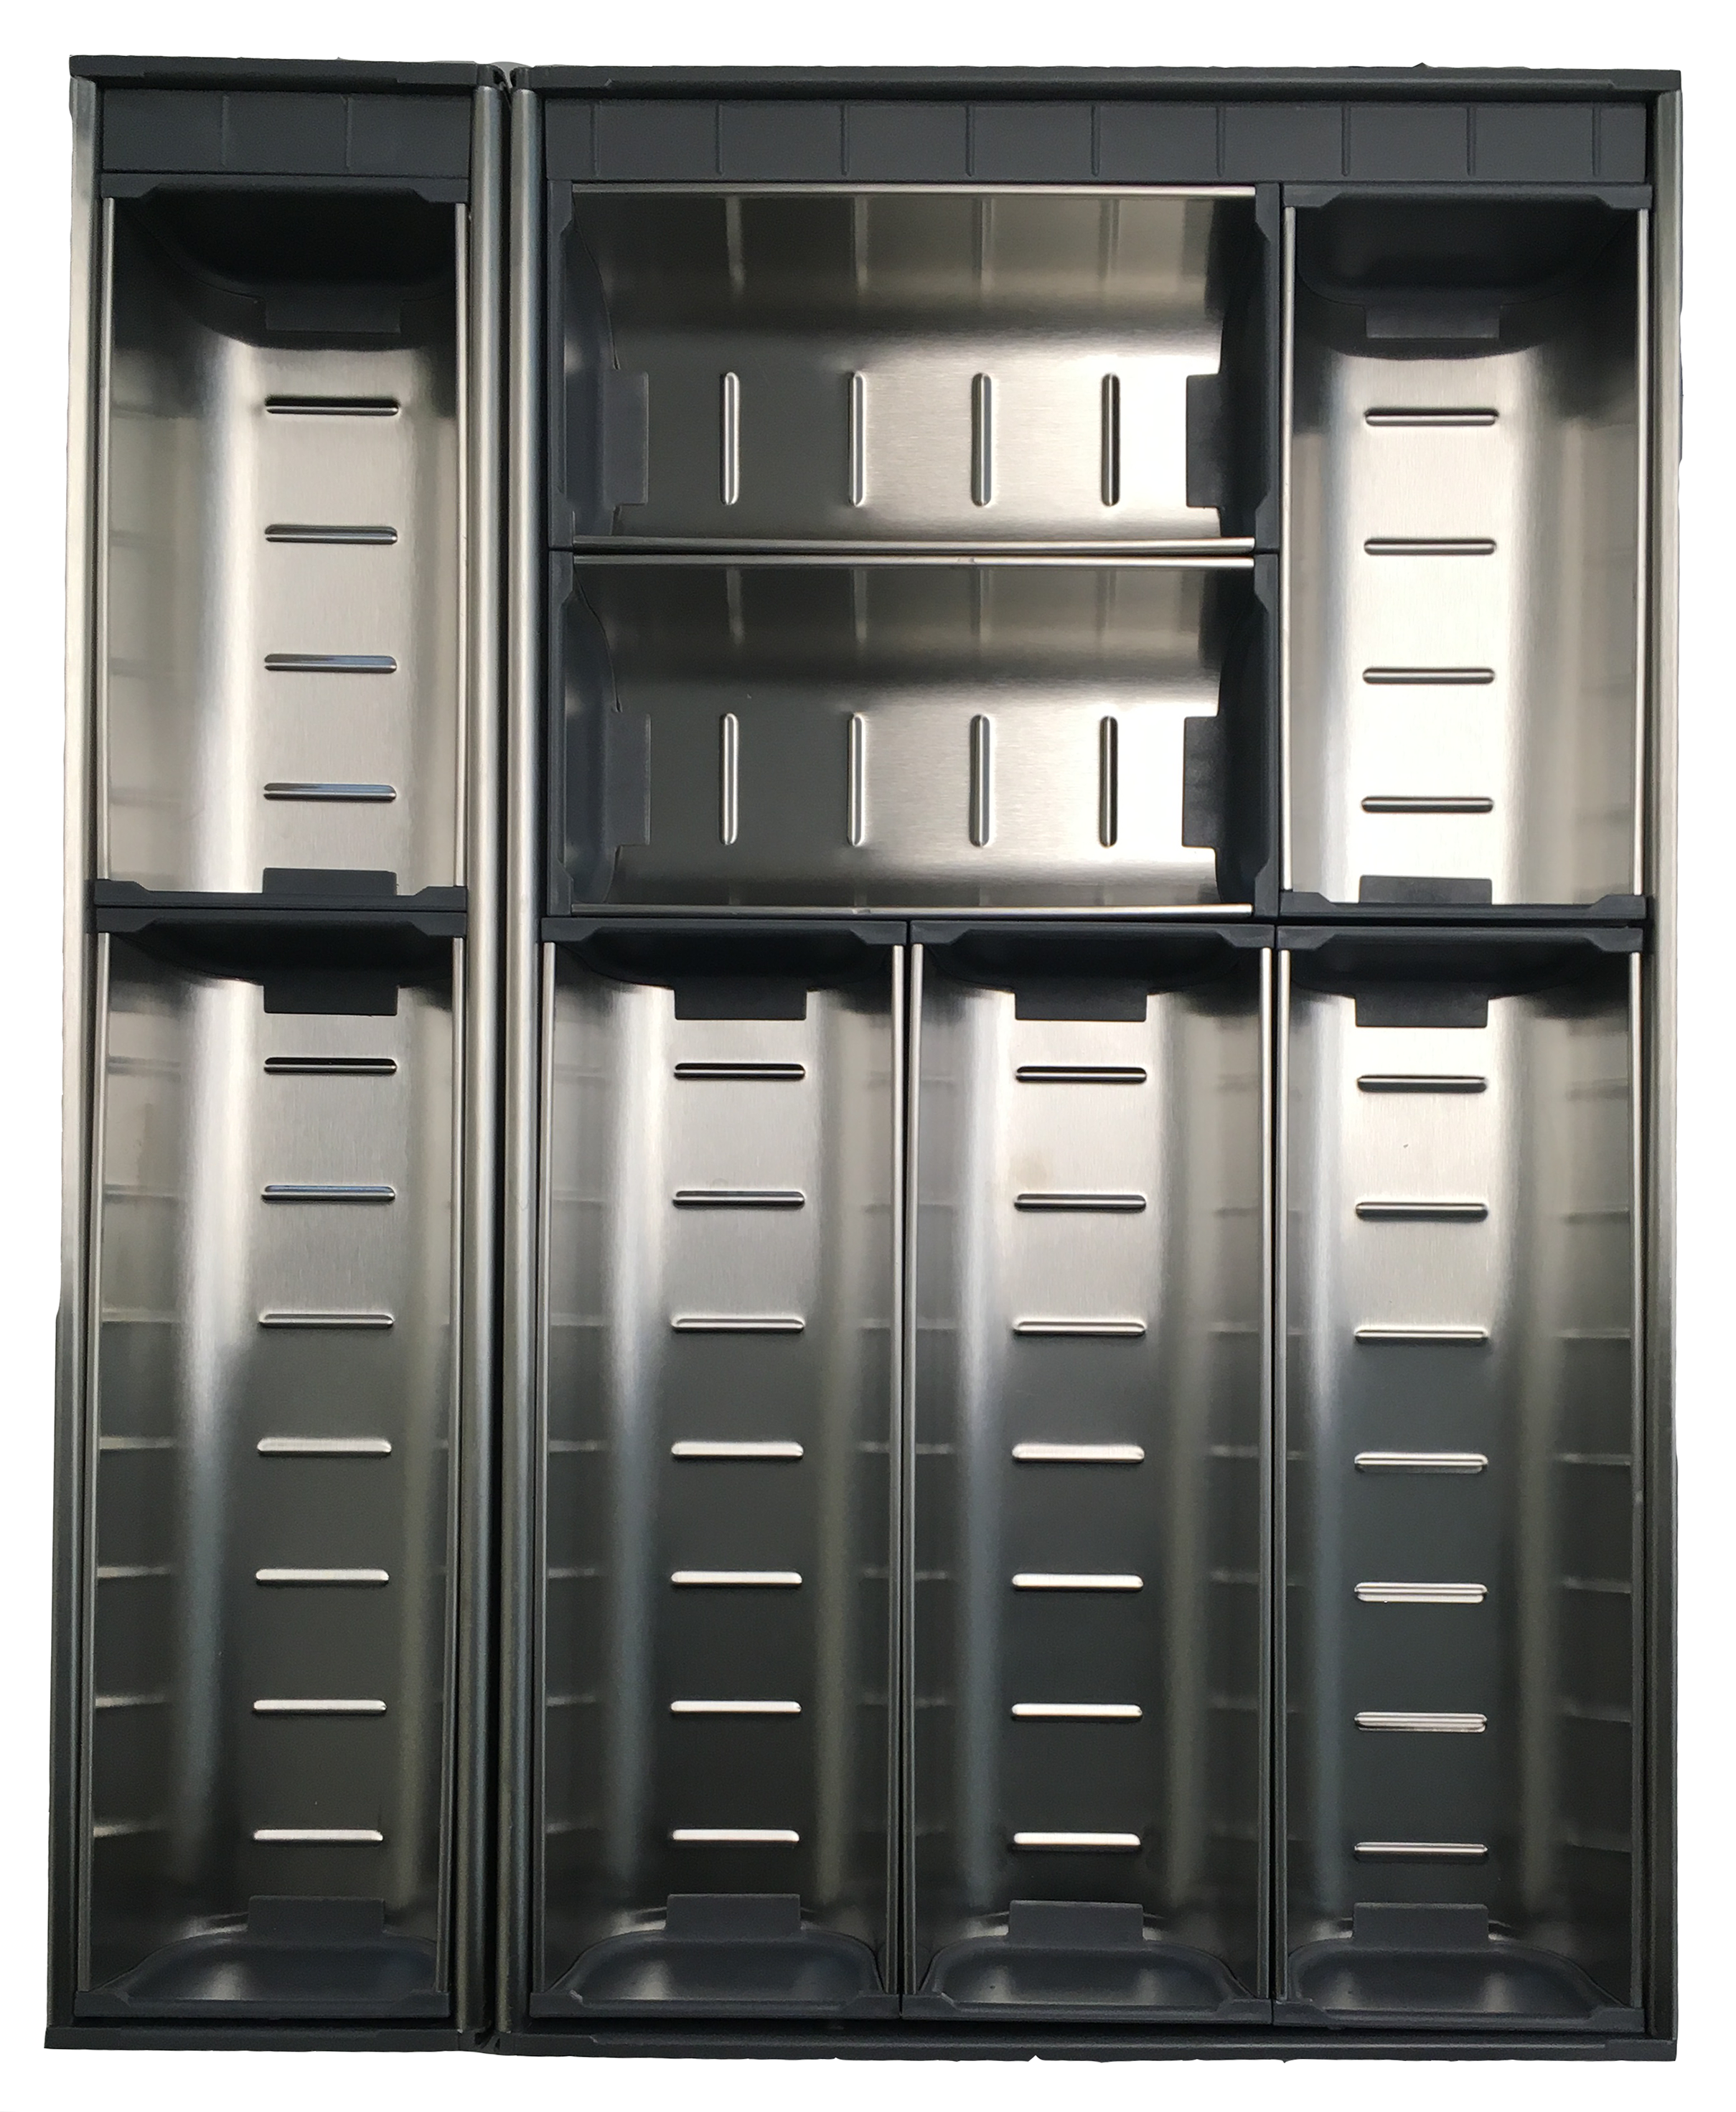 CUT50-STAINLESS-STEEL-E0650AB for kitchen drawers